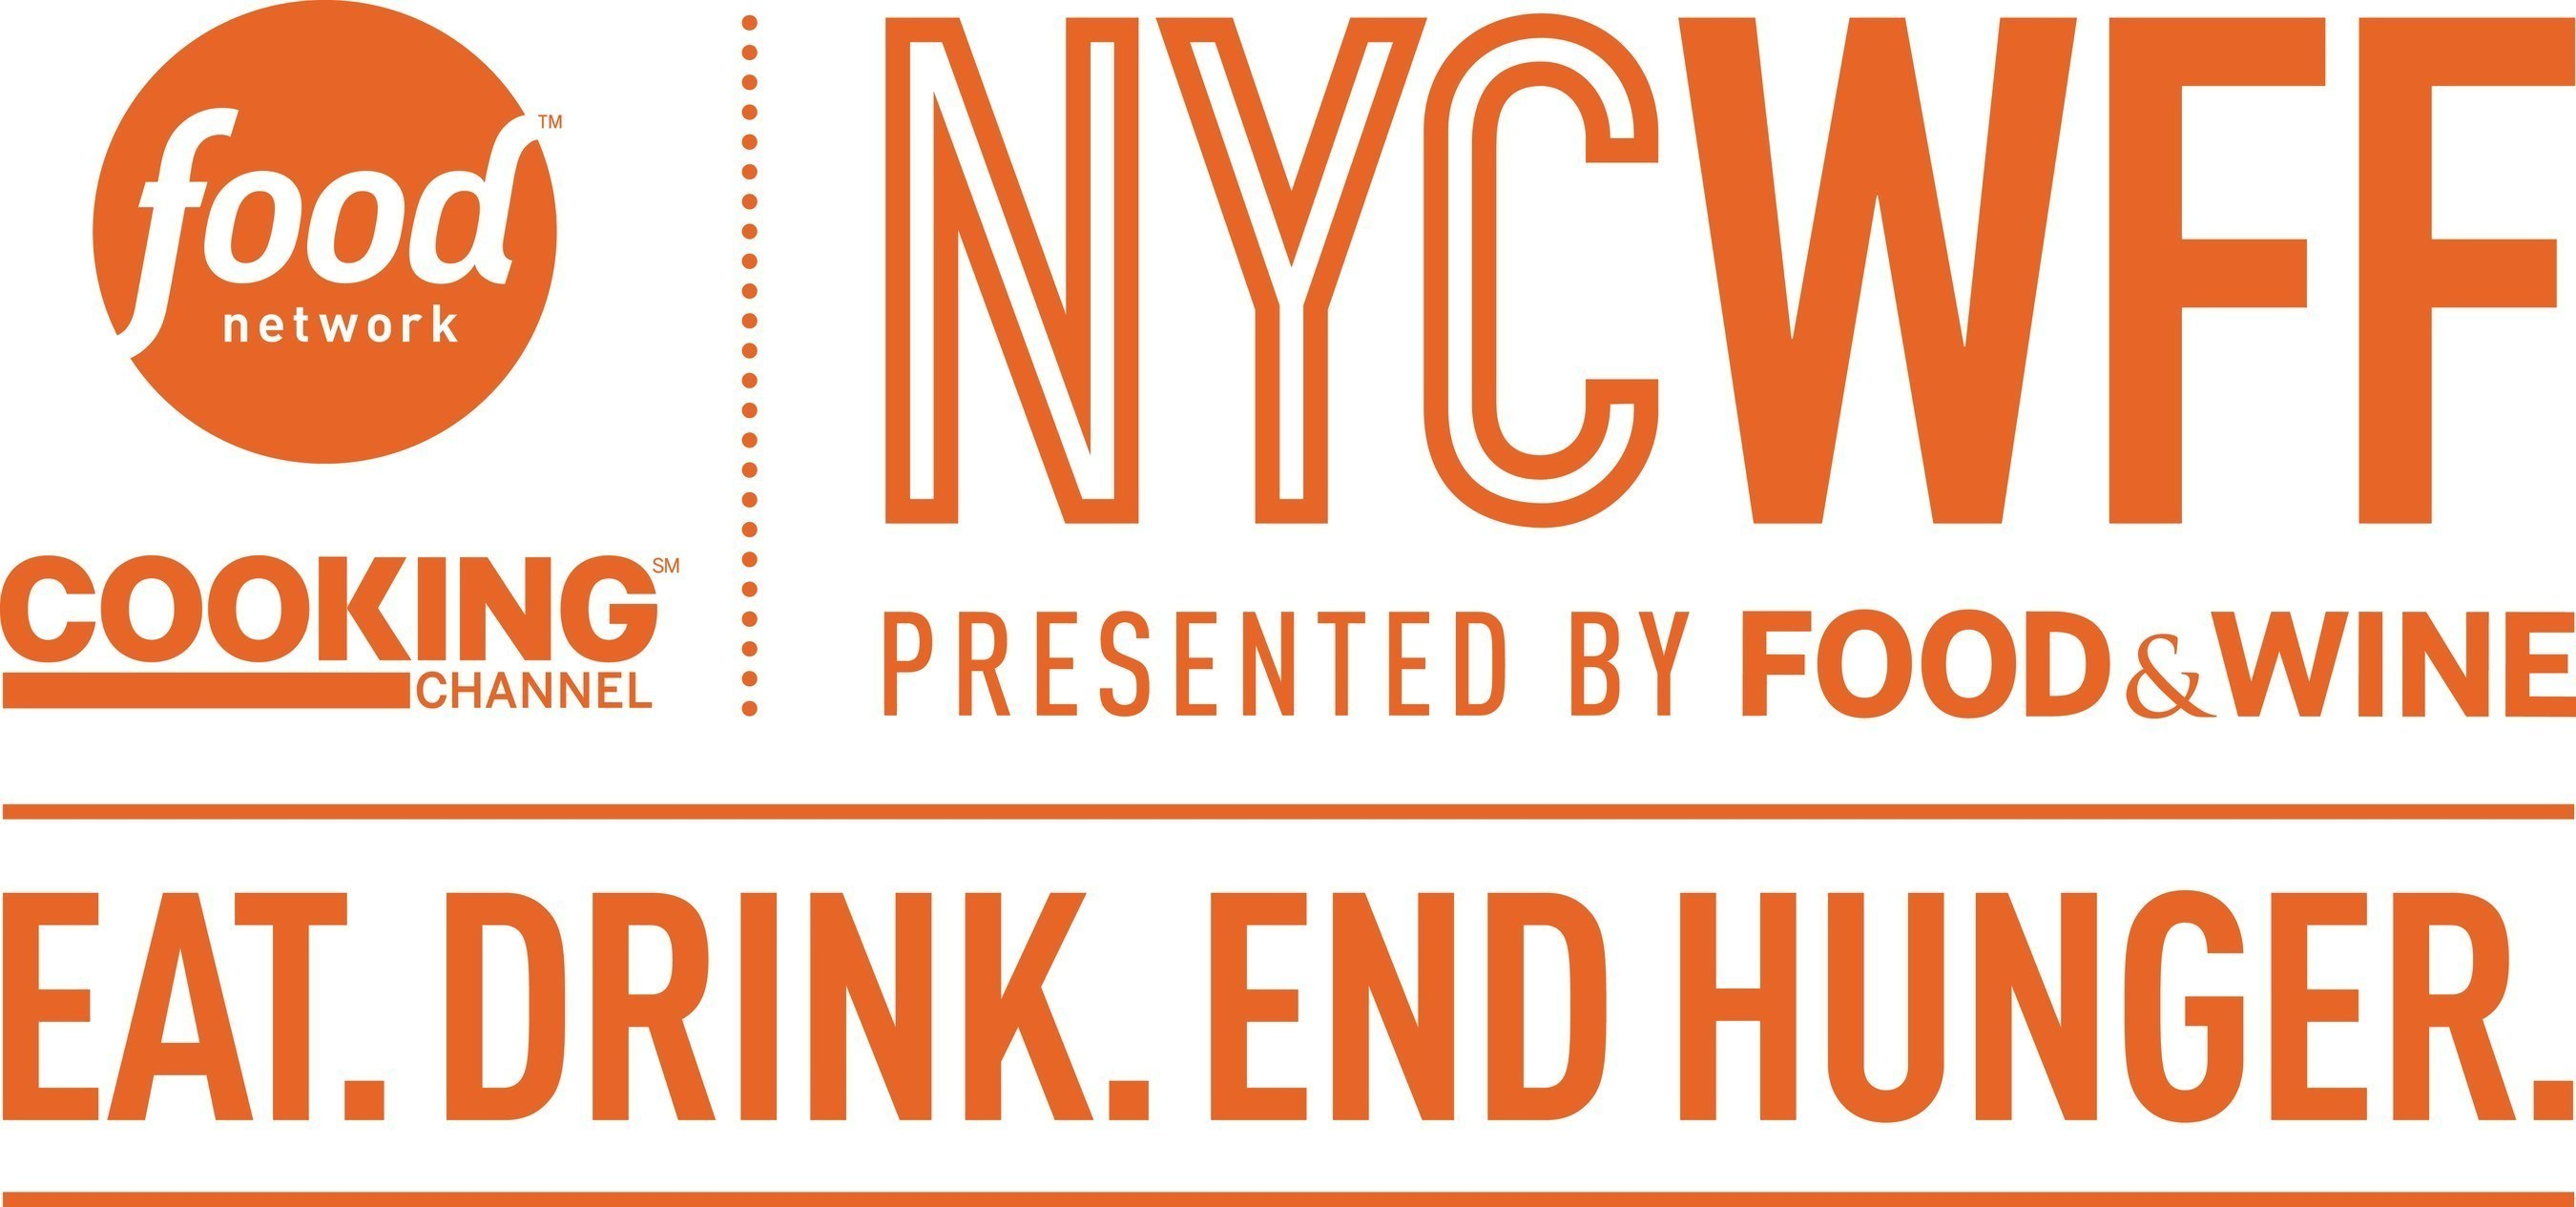 The Food Network & Cooking Channel New York City Wine & Food Festival presented by FOOD & WINE takes place October 15 - 18, 2015.